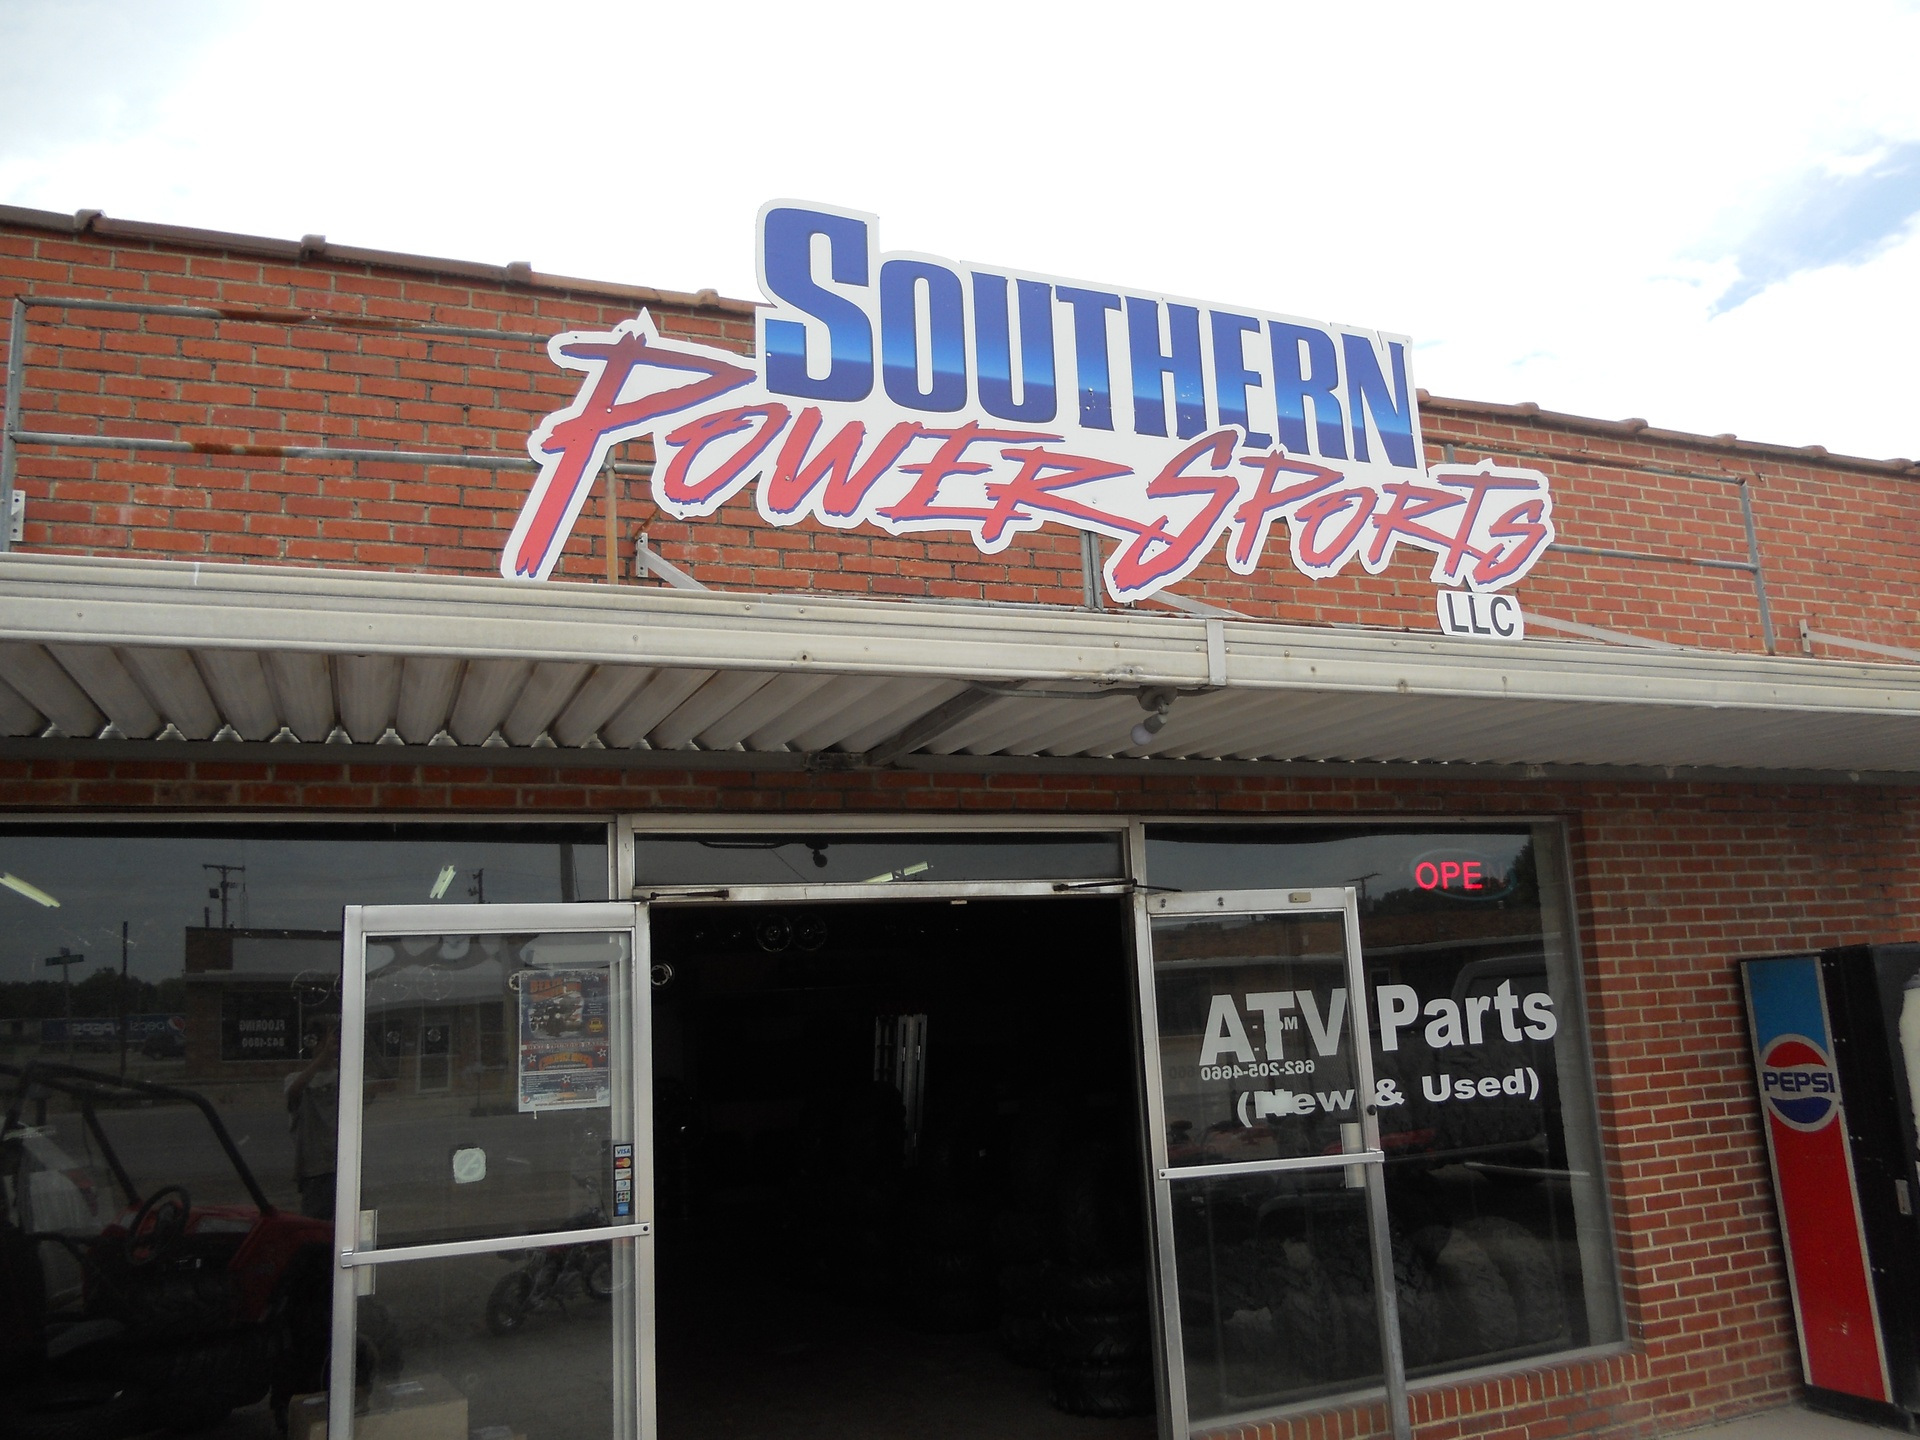 Southern Powersports, 539 Daybrite Drive, Tupelo, Mississippi, 38801, United States